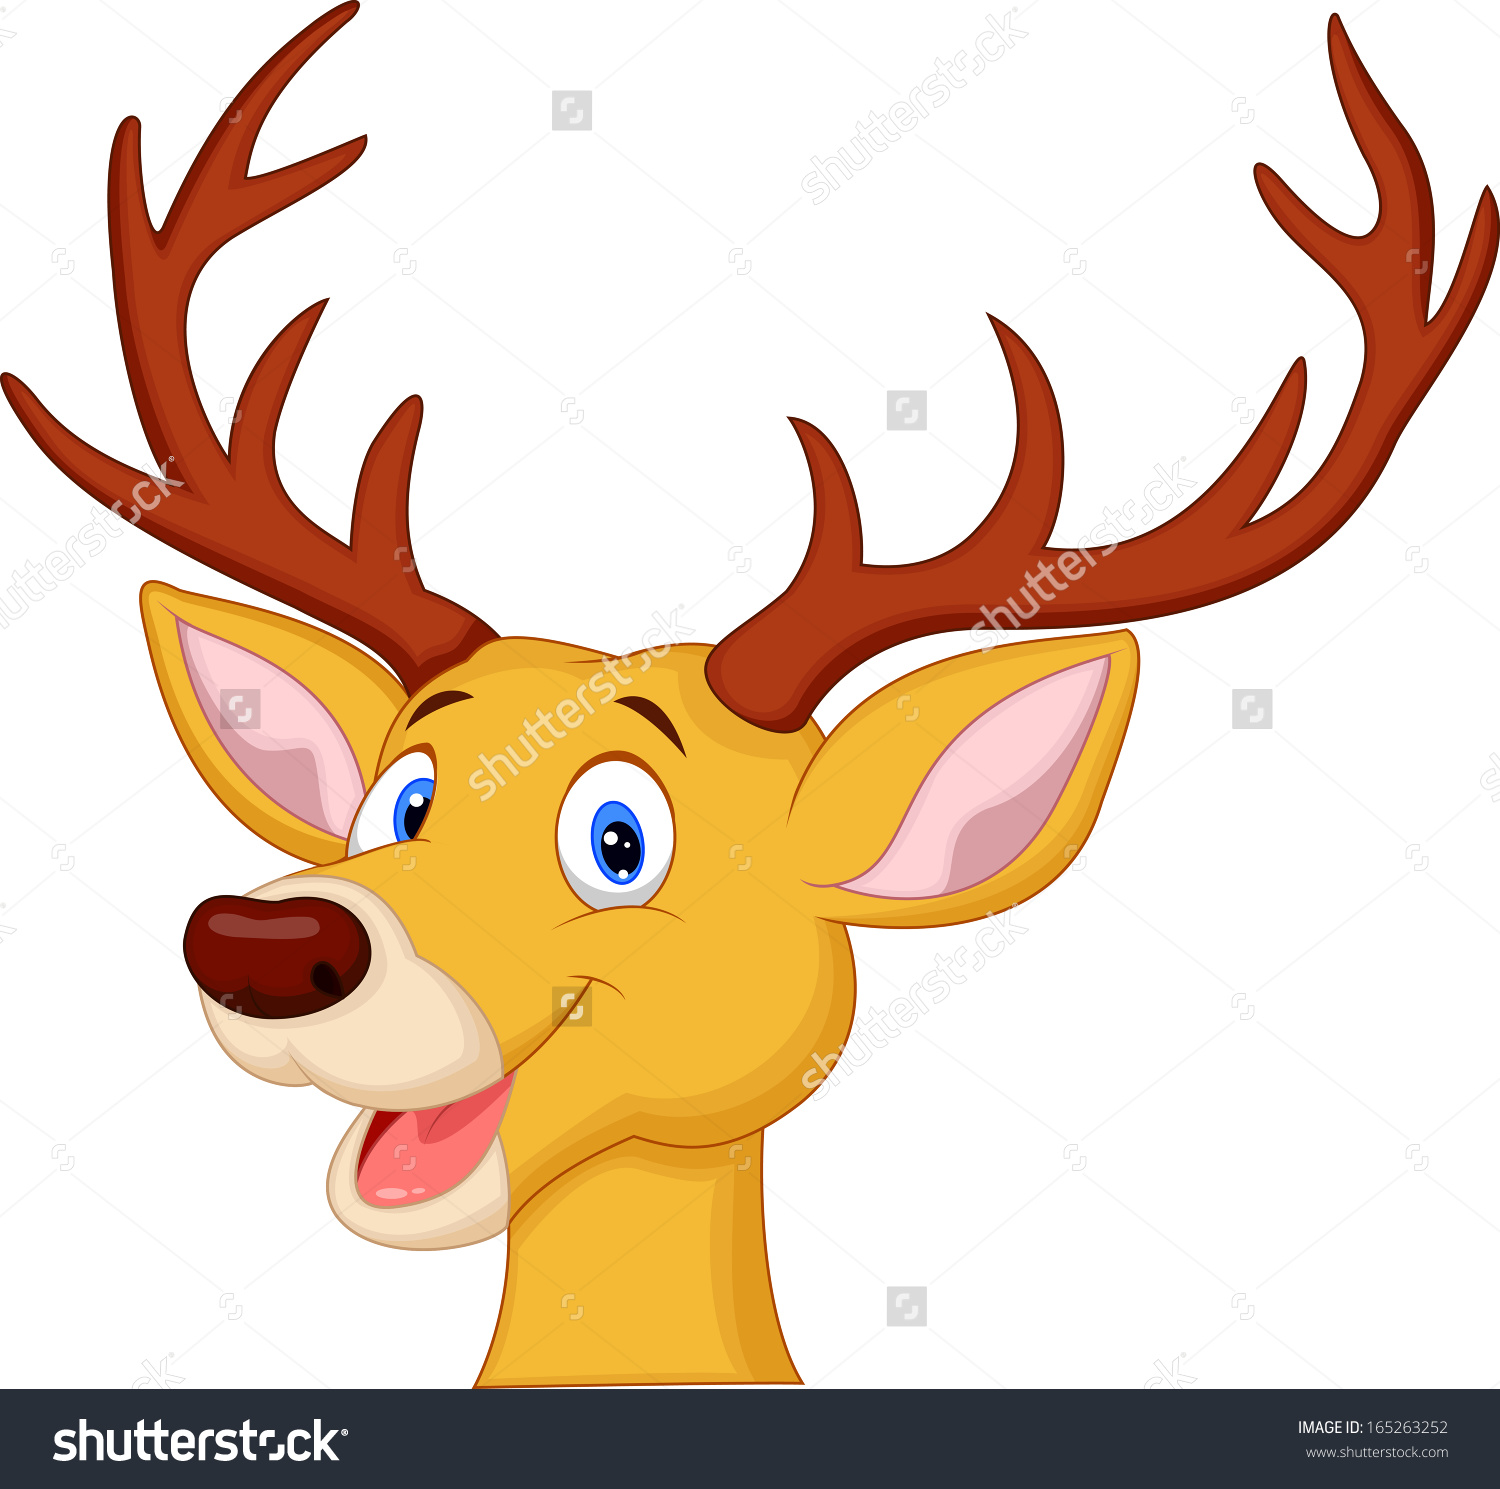 Cute Reindeer Clipart at GetDrawings.com.